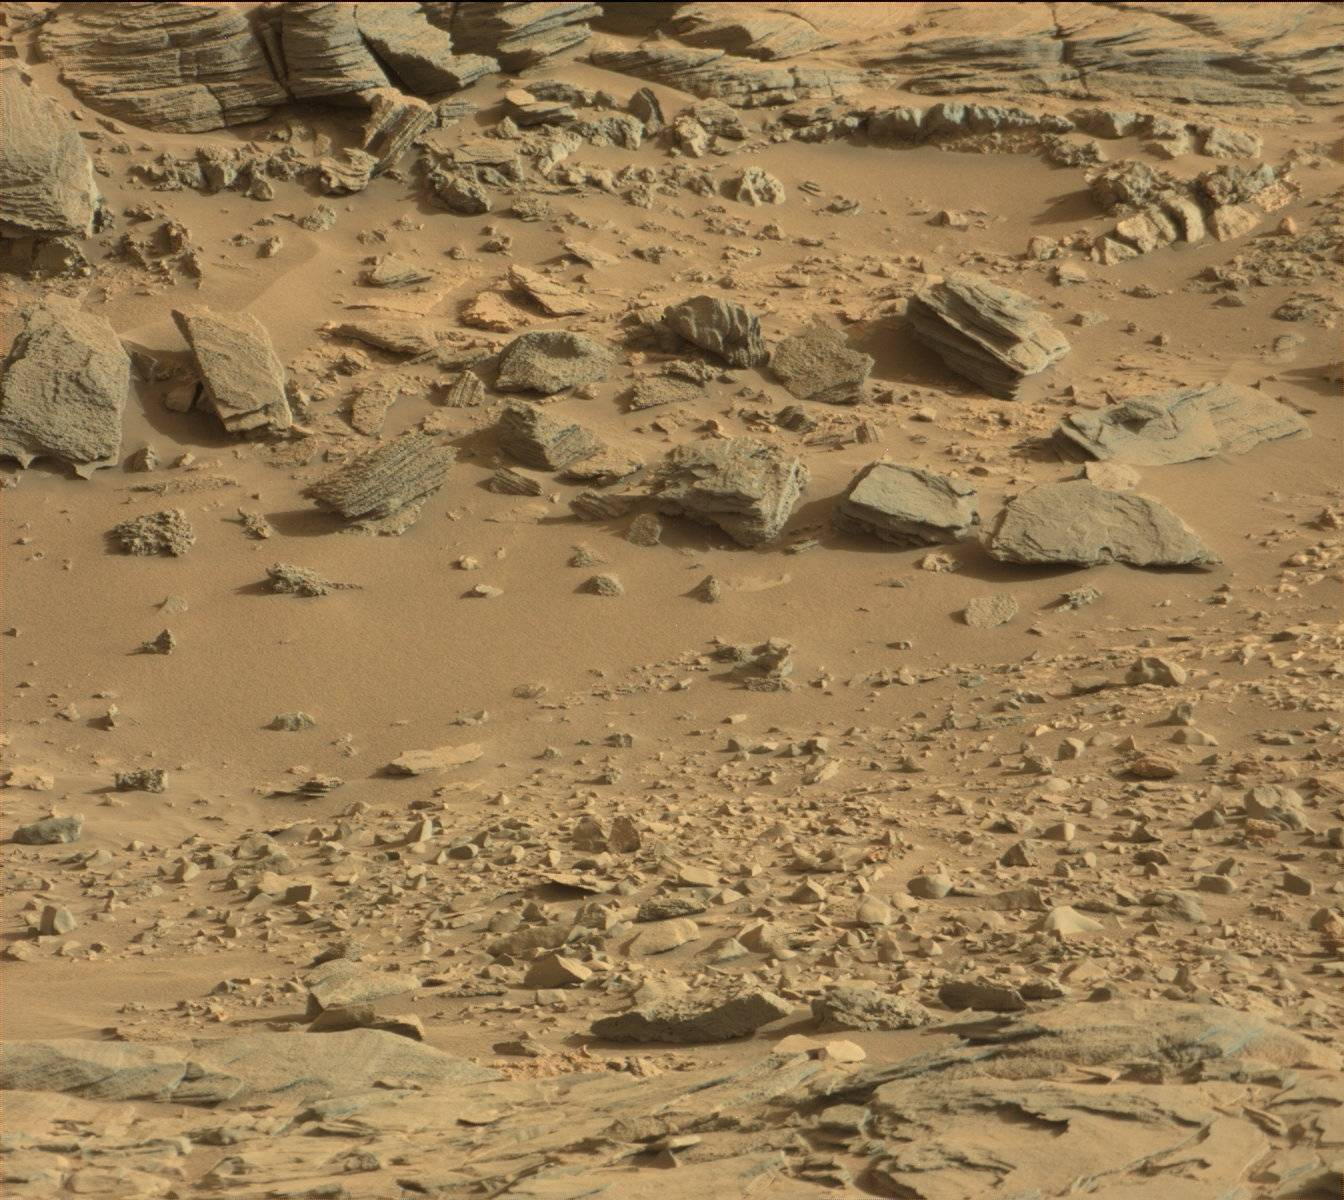 UFO SIGHTINGS DAILY: Frog Statue Found By Mars Curiosity ...